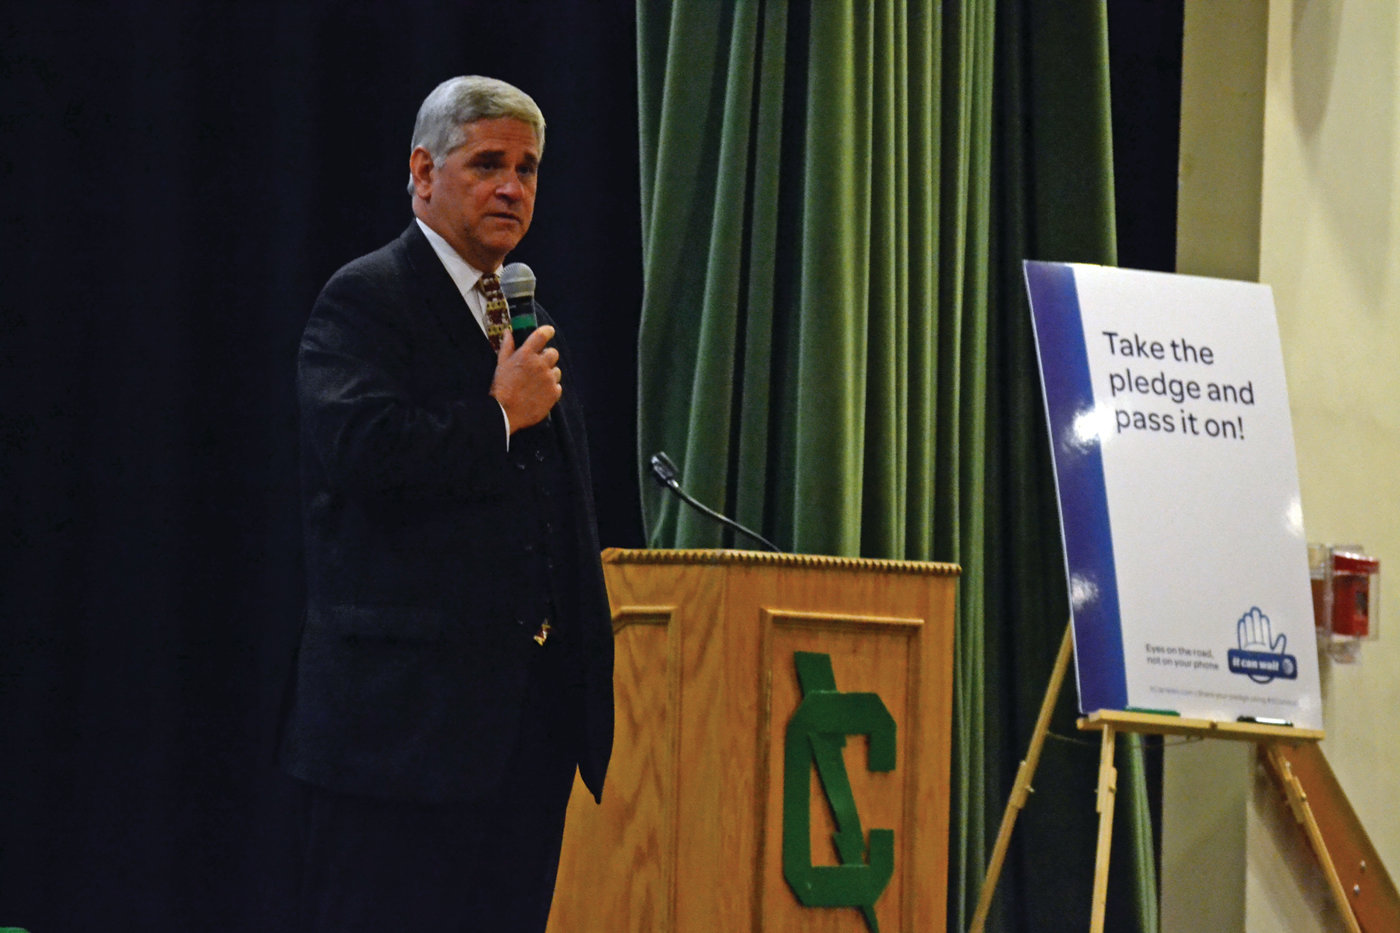 FULL CIRCLE: Attorney General Peter Kilmartin speaks to students at Cranston East as part of his 100th (and final) presentation of the It Can Wait program, which is a partnership between Rhode Island and AT&T.